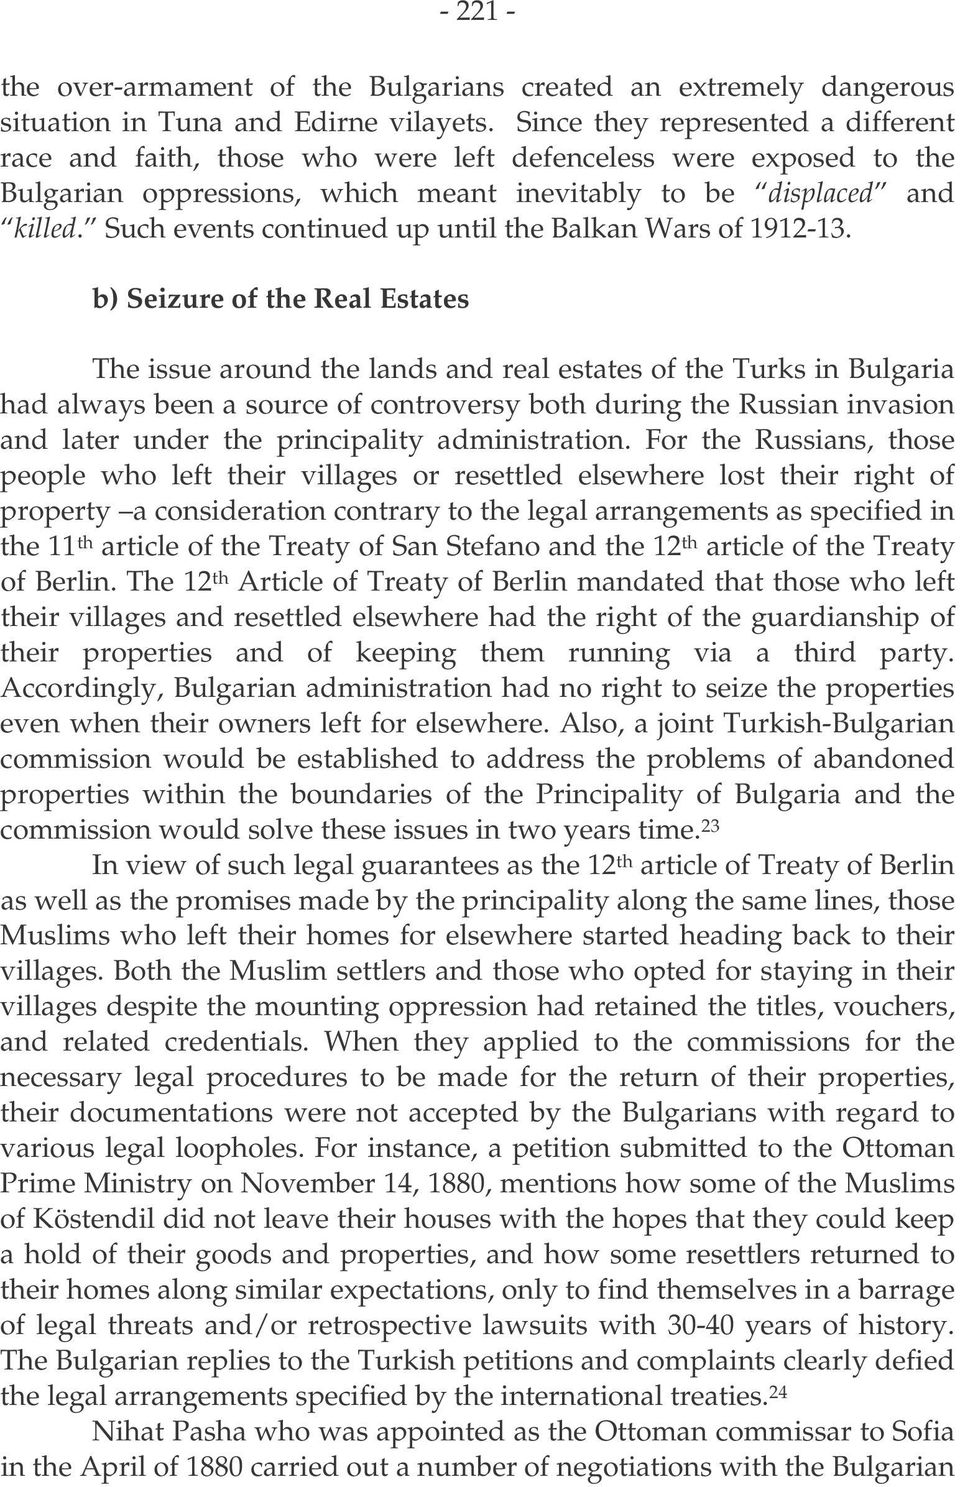 Such events continued up until the Balkan Wars of 1912-13.